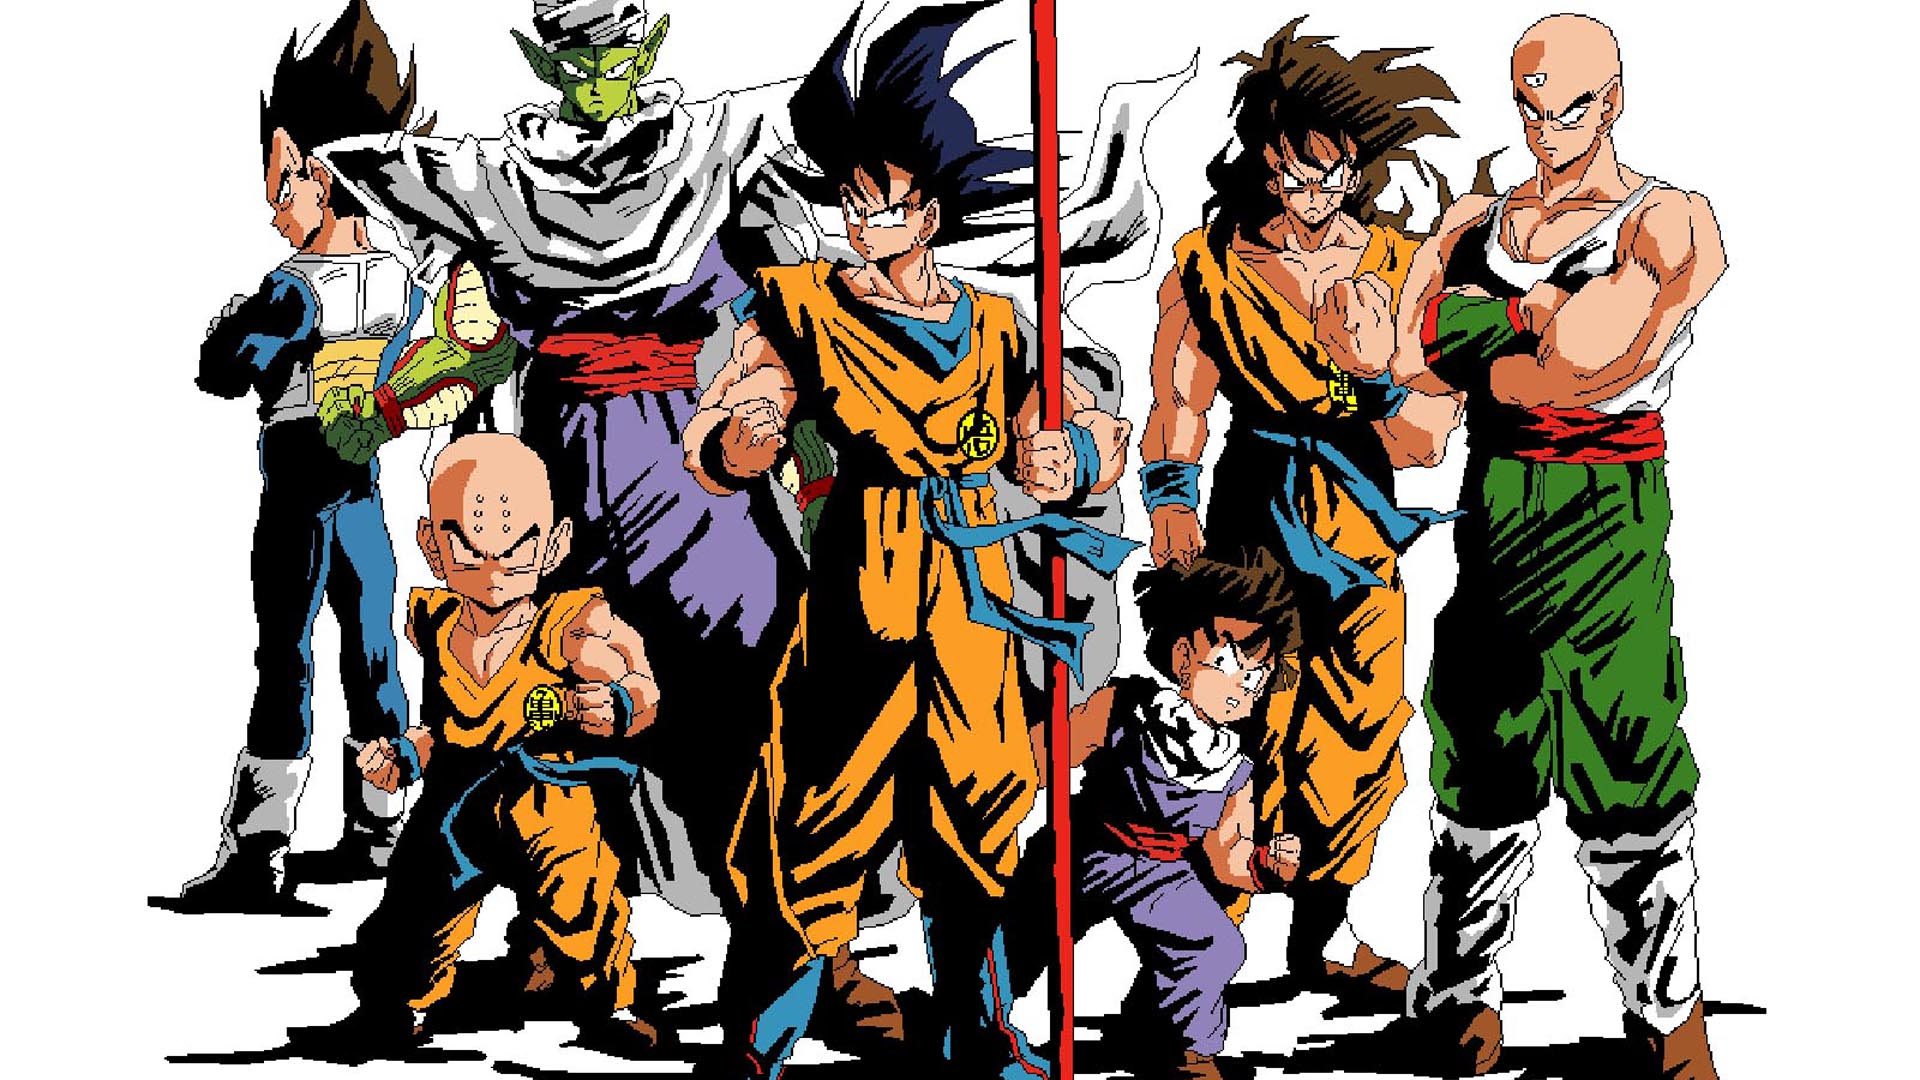 Dragonball Wallpaper 1920x1080 Wallpapers 1920x1080 Wallpapers 1920x1080